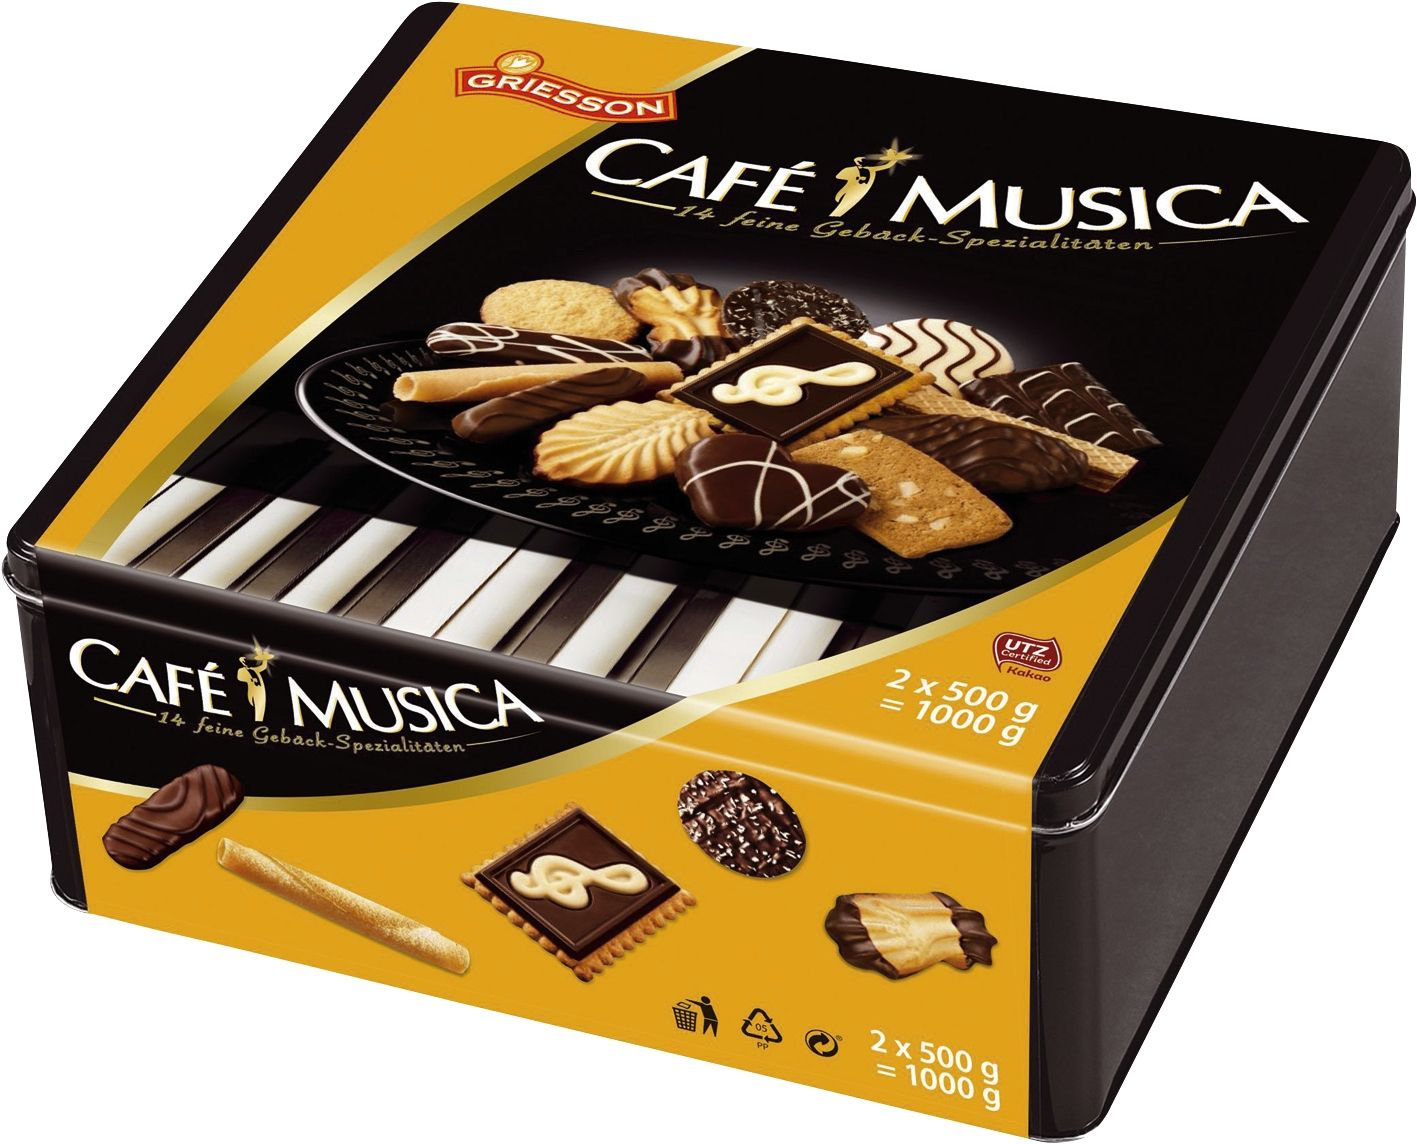 Cafe Musica - Metalldose, 2 x 500 g